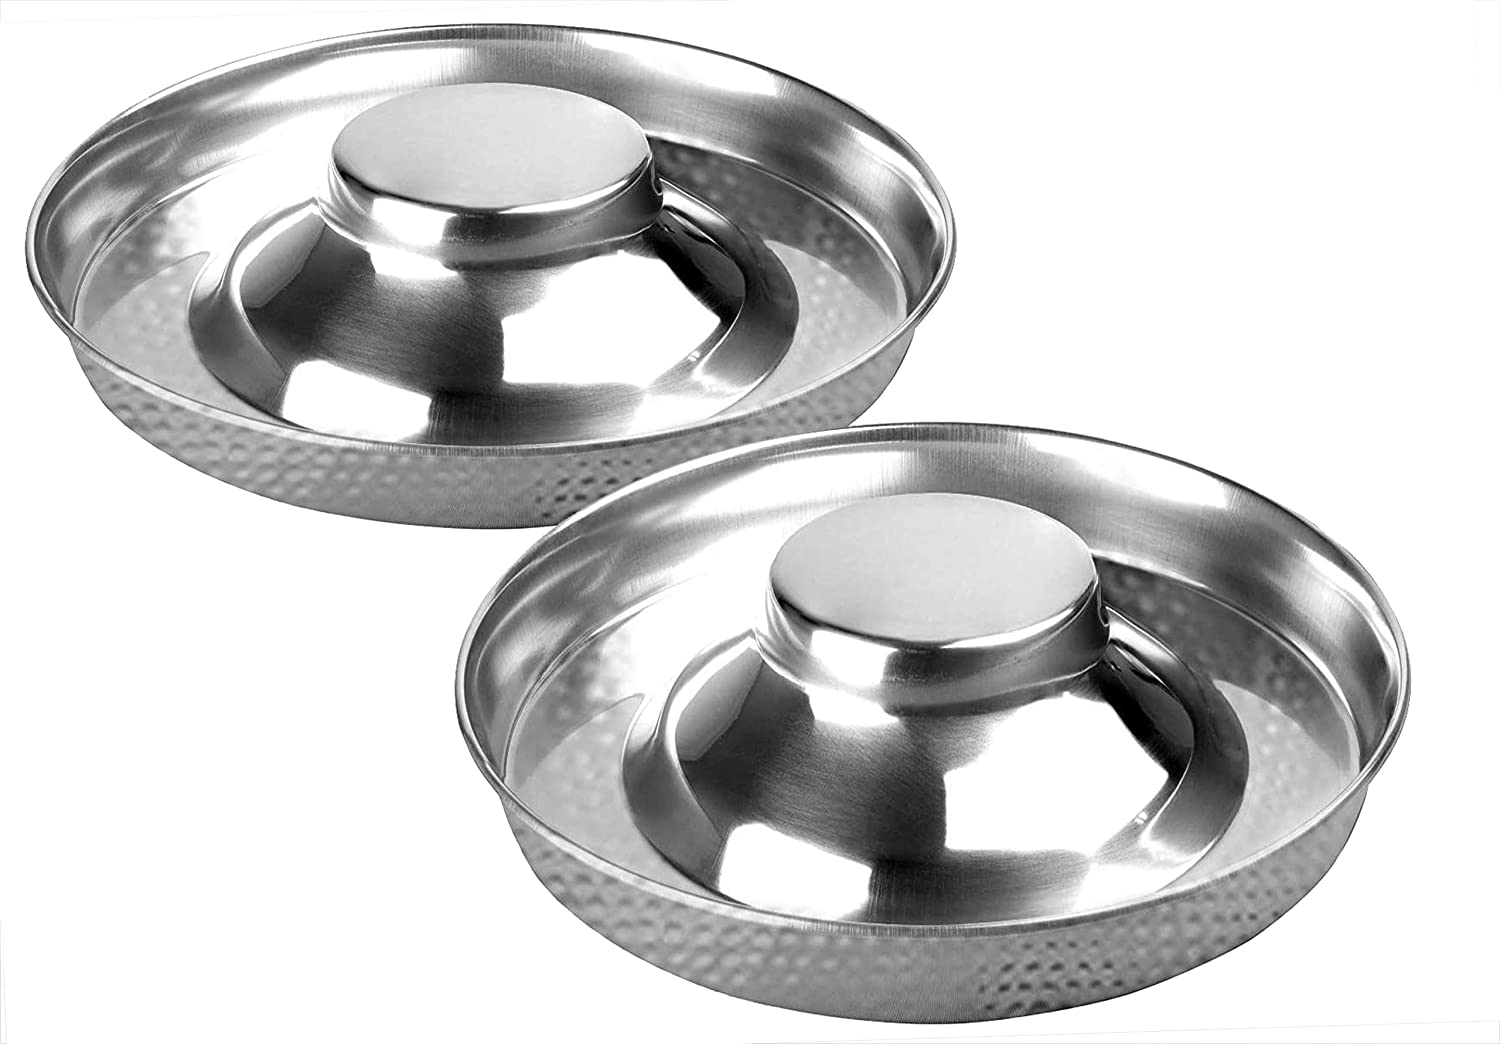 King International Stainless Steel Hammered Dog Bowl 2 Puppy Litter Food Feeding Weaning Silver Stainless Dog Bowl Dish Large Dogs, Pets Feeder Bowl and Water Bowl Perfect Choice